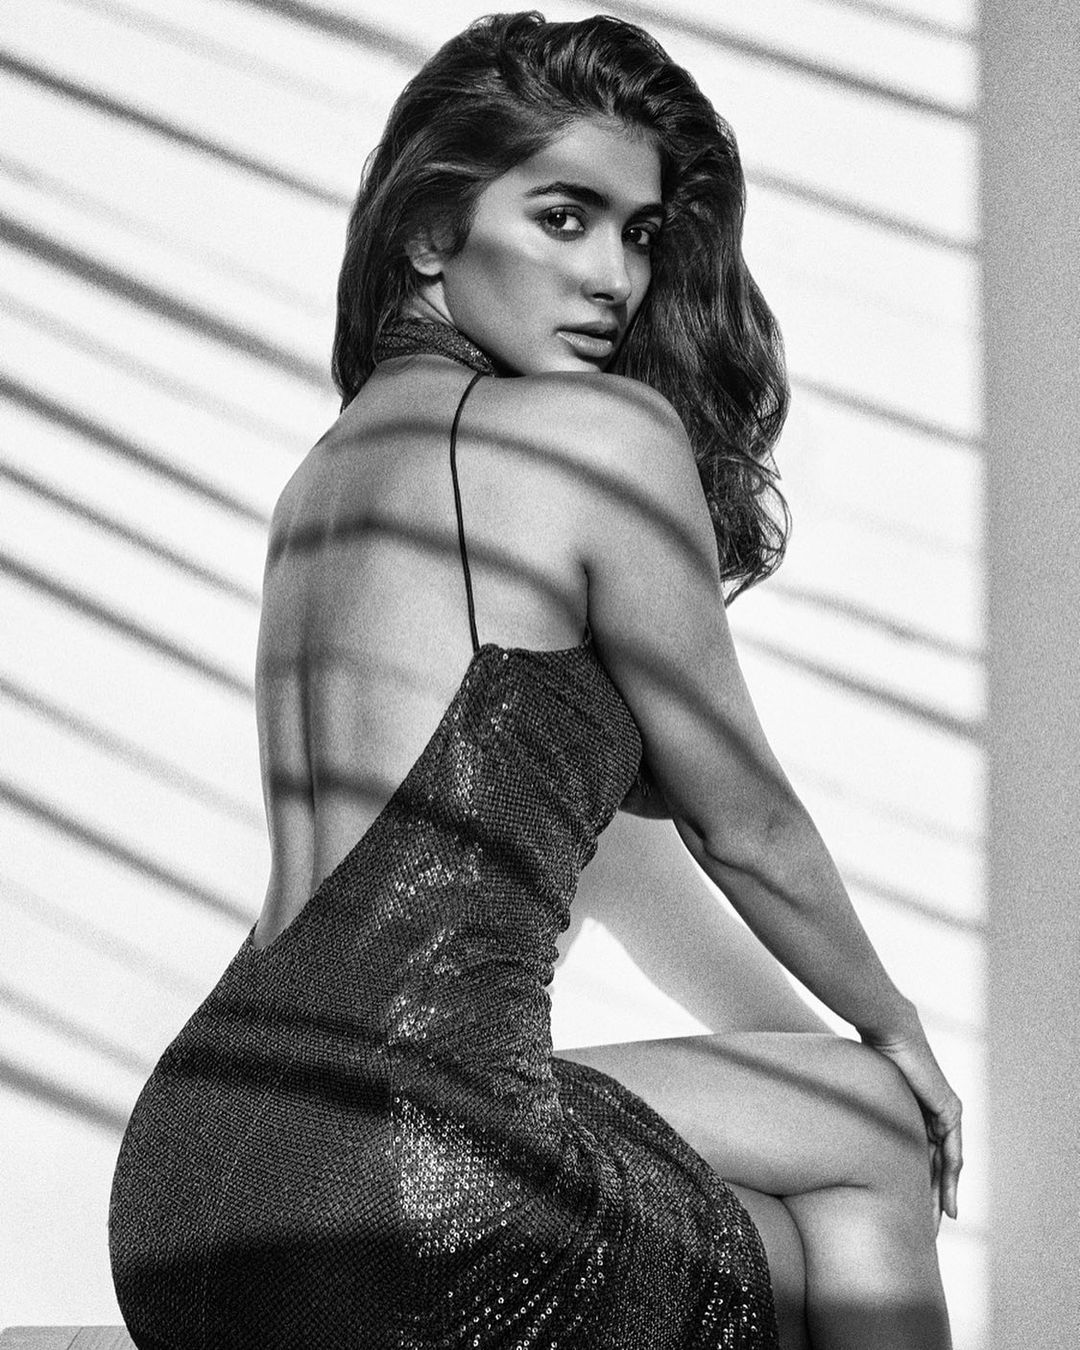 Actors Gossips: Pooja Hegde shares scintillating monochrome photo in saxy backless dress, leaves fans wanting more